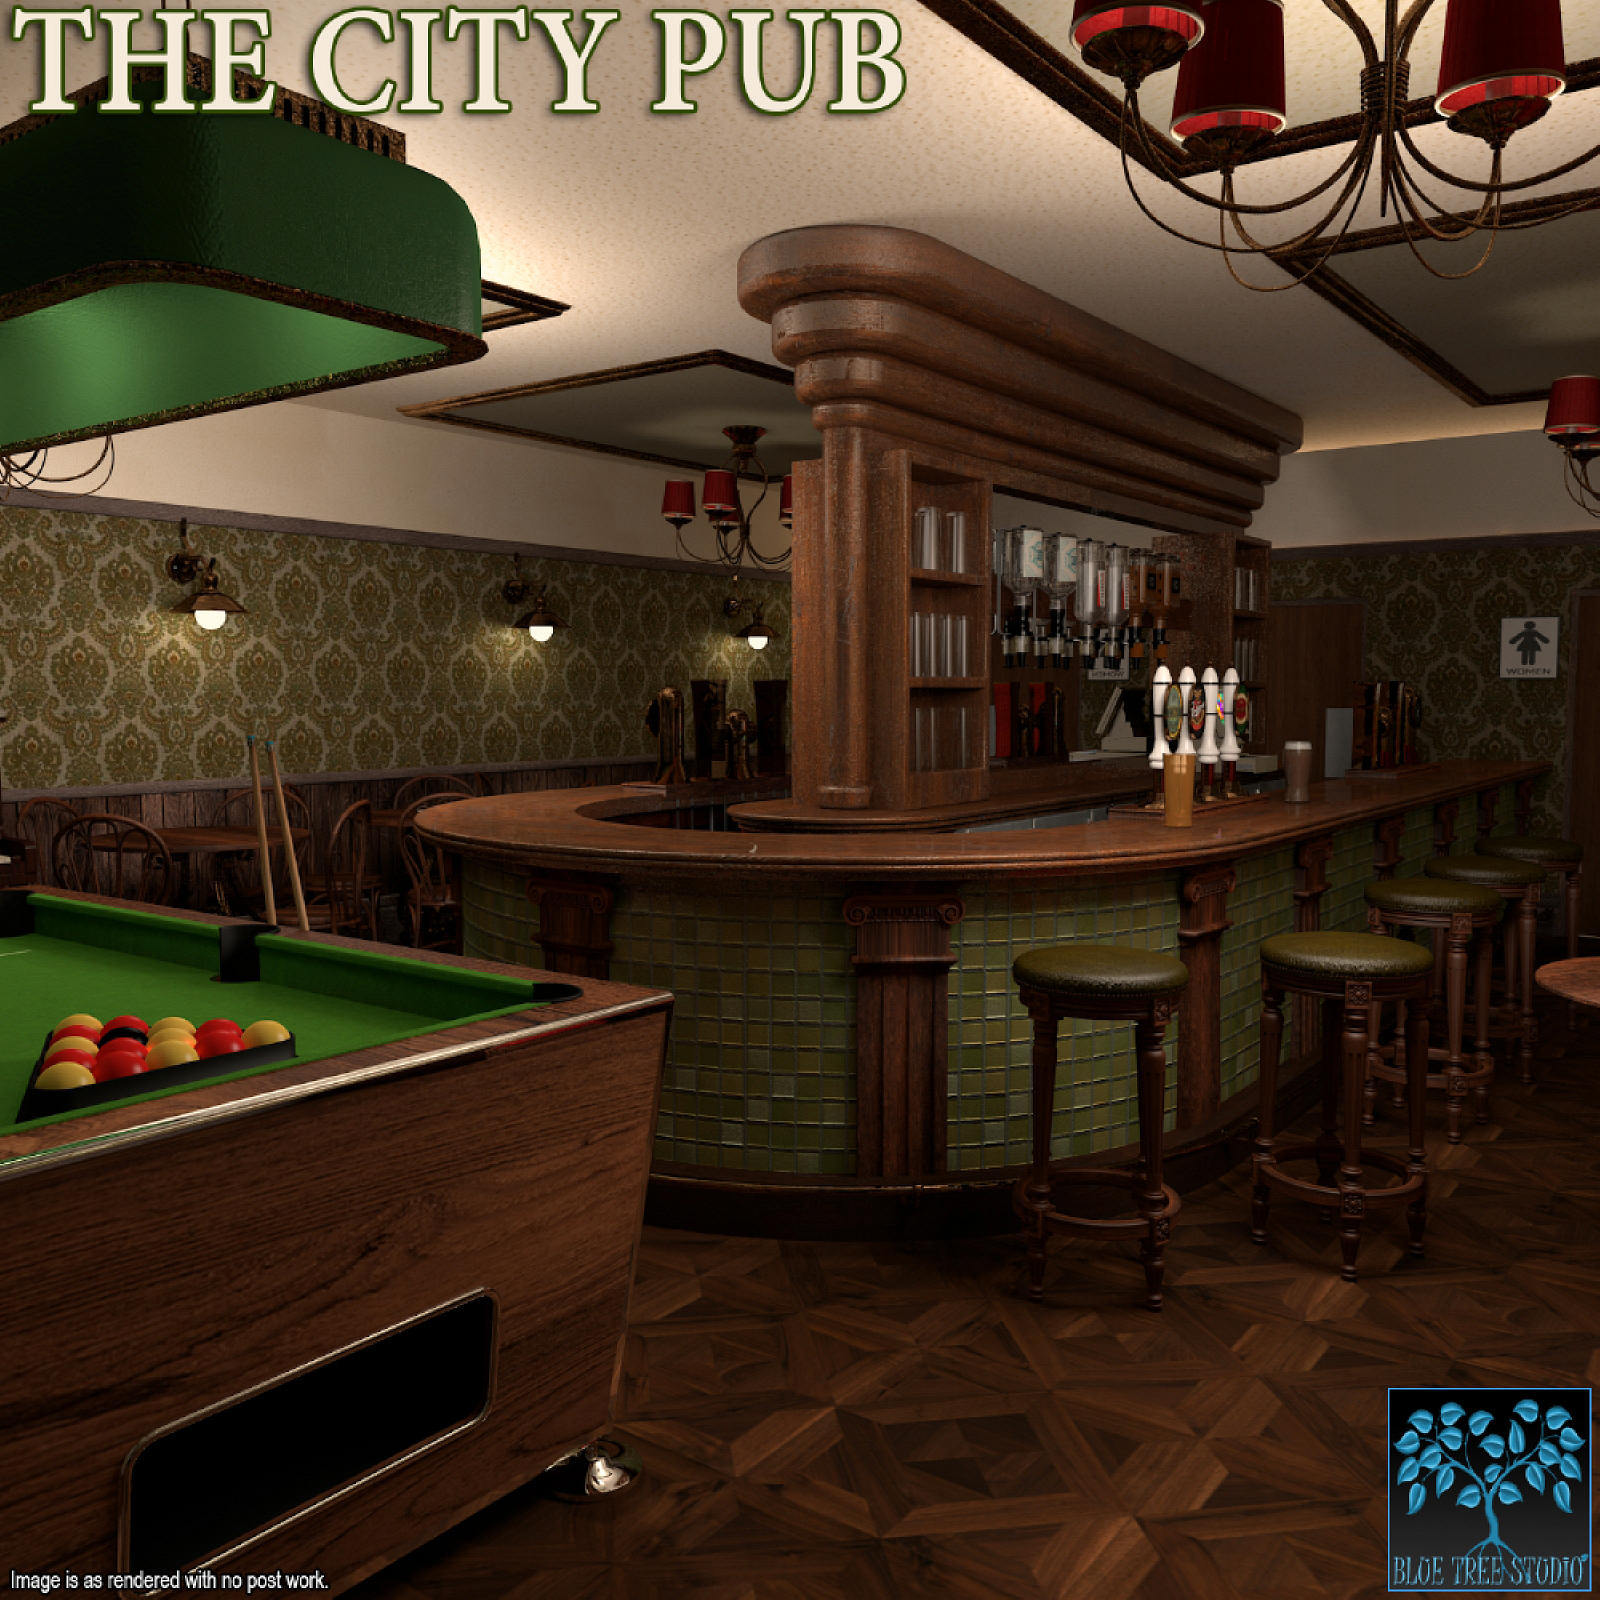 The City Pub for Poser by BlueTreeStudio